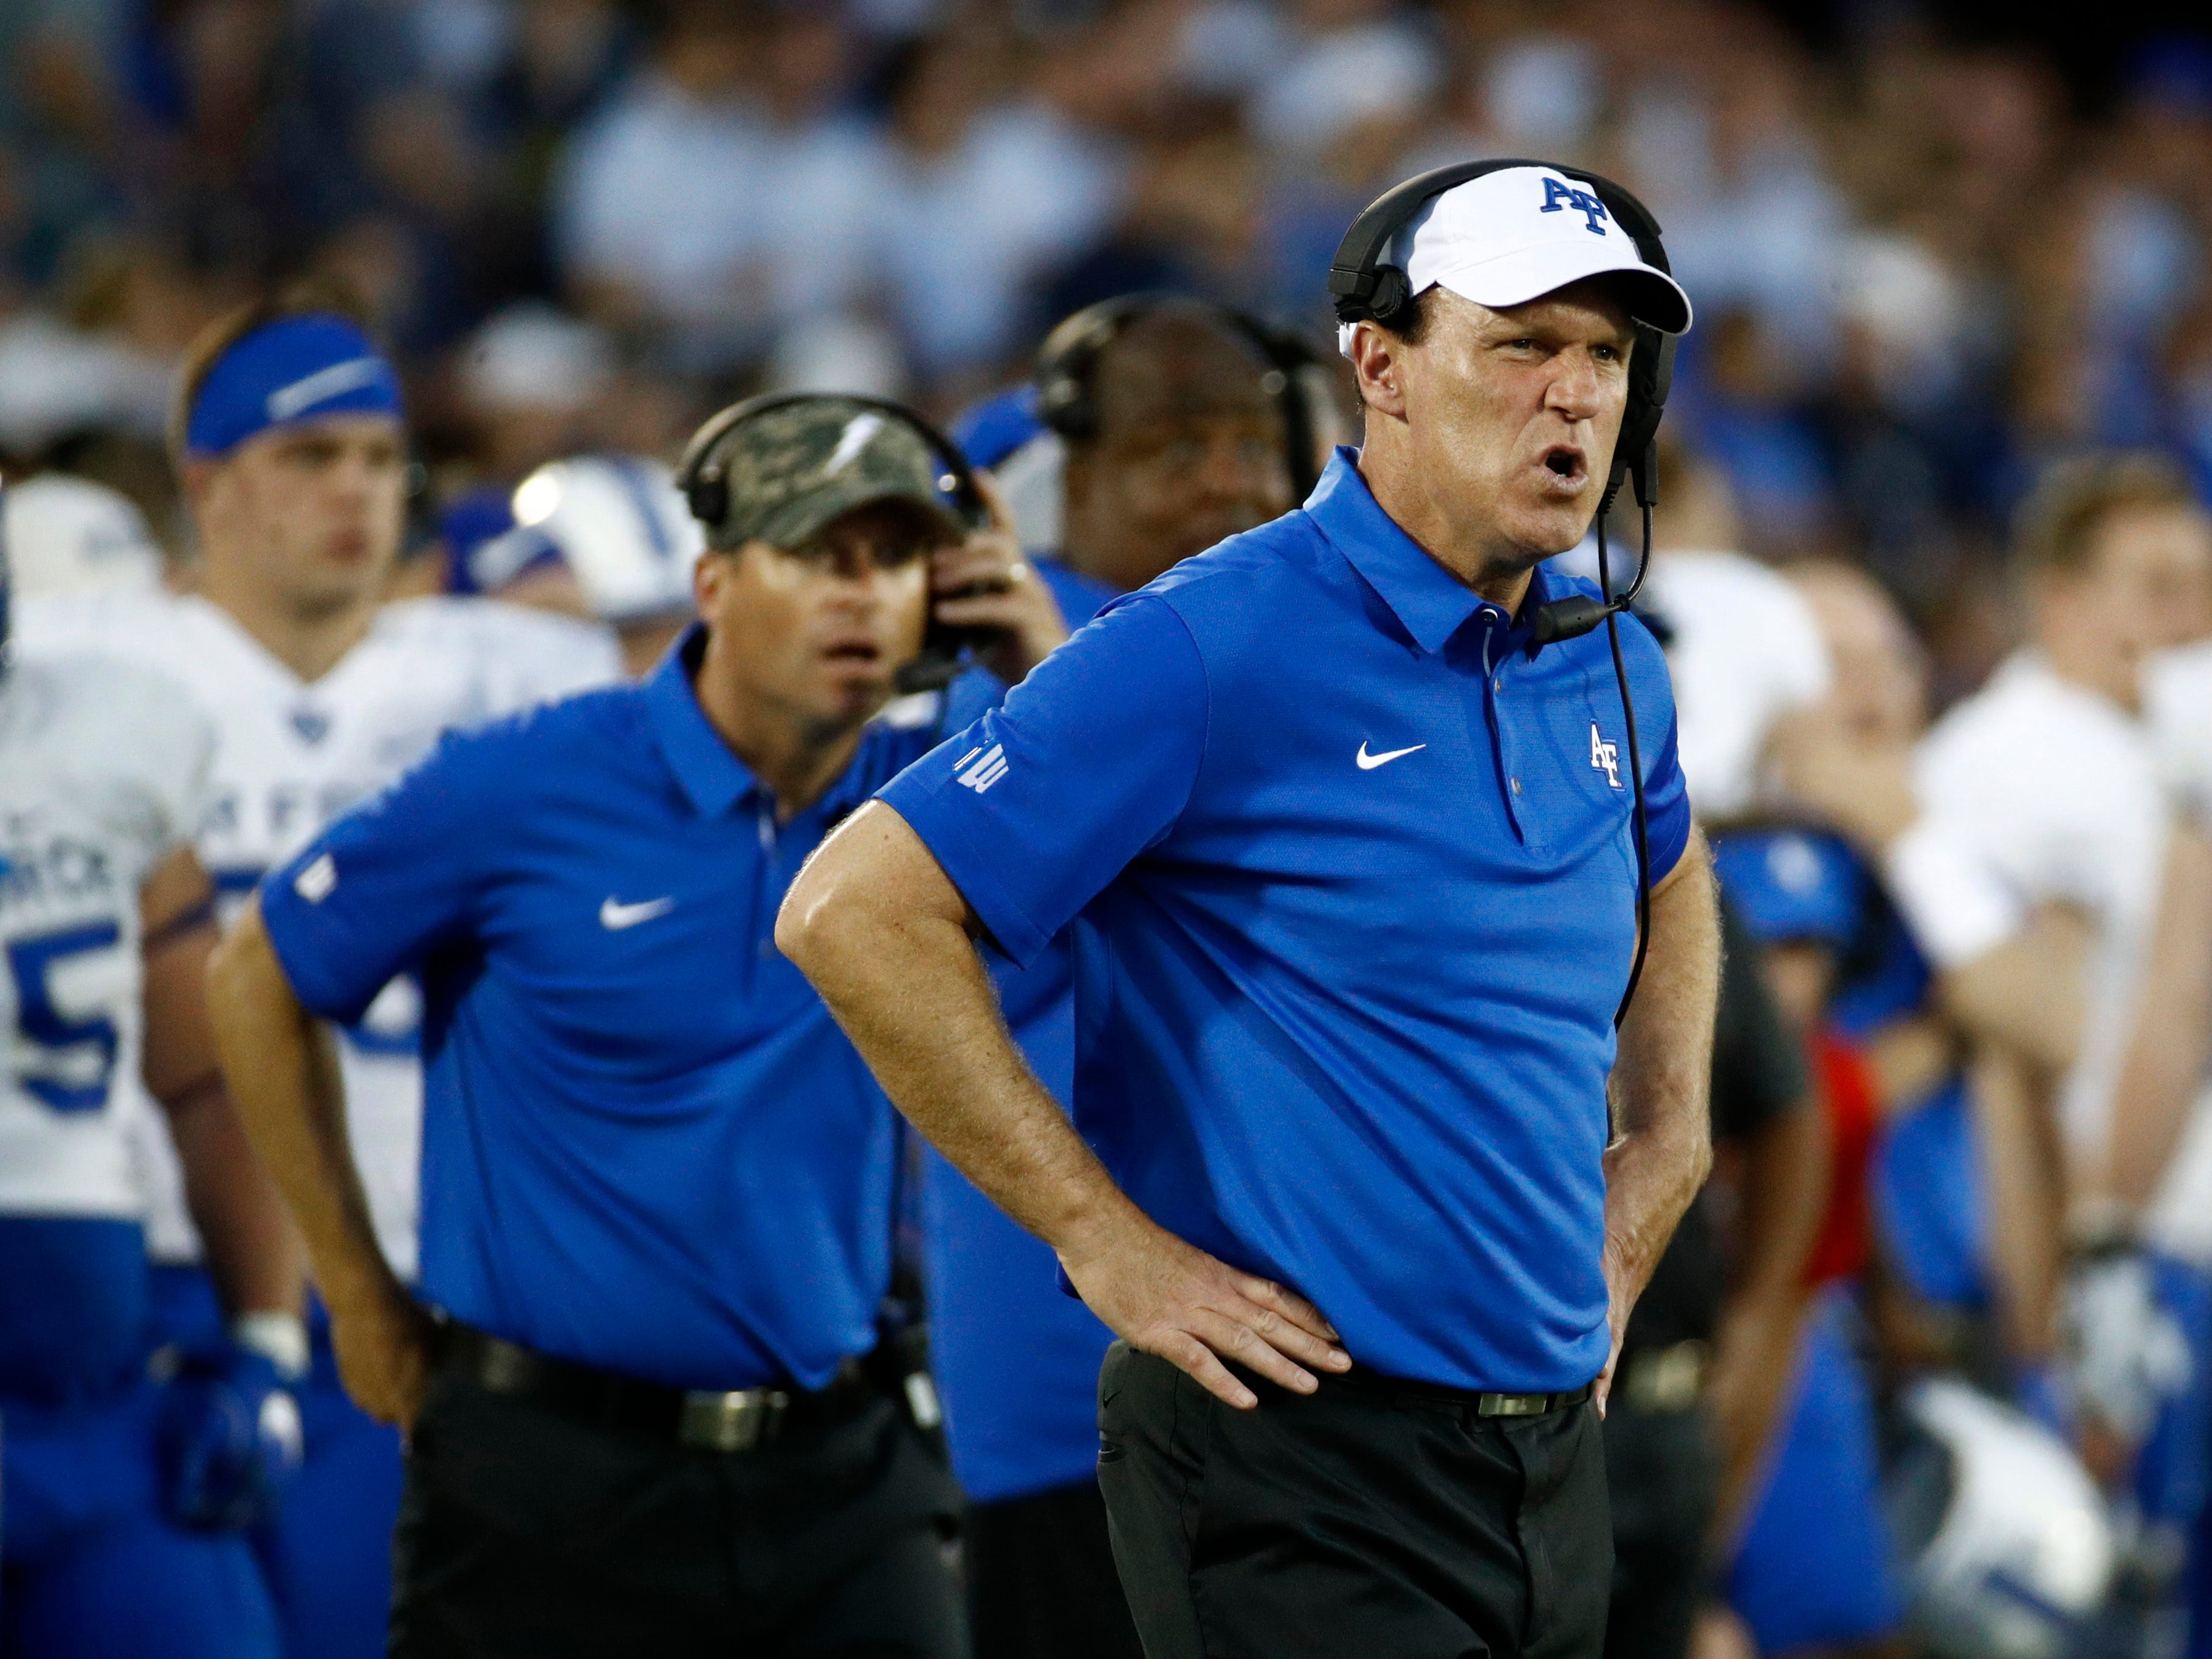 Air Force head coach Troy Calhoun watches the second half of an NCAA college football game against Navy in Annapolis, Md., Saturday, Oct. 7, 2017. Navy won 48-45. (AP Photo/Patrick Semansky)